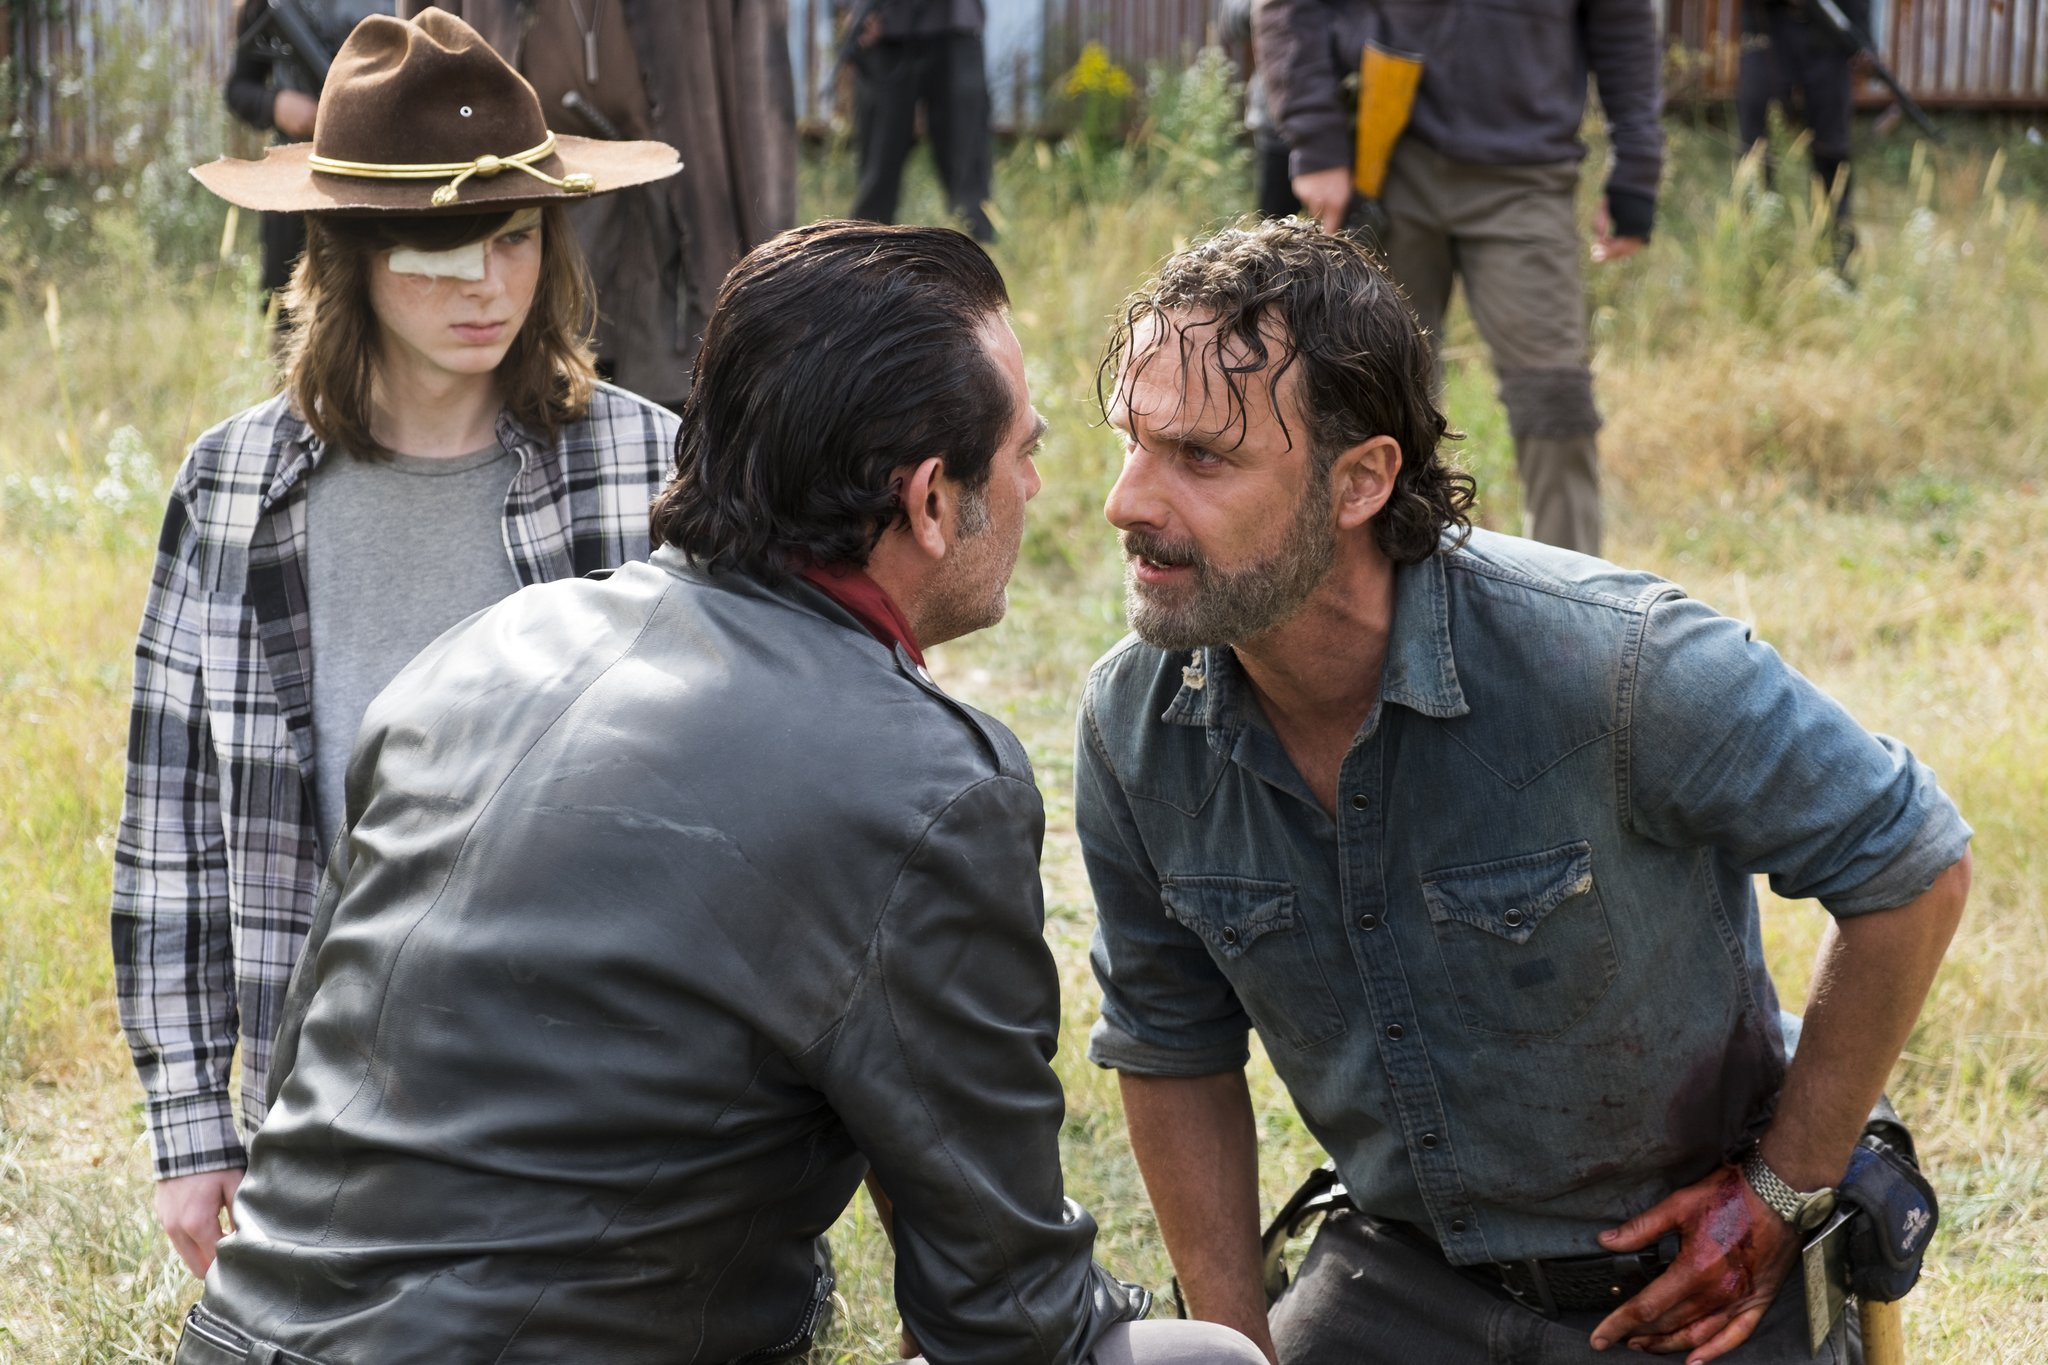 If Negan is not a savior - who then can redeem The Walking Dead's world?